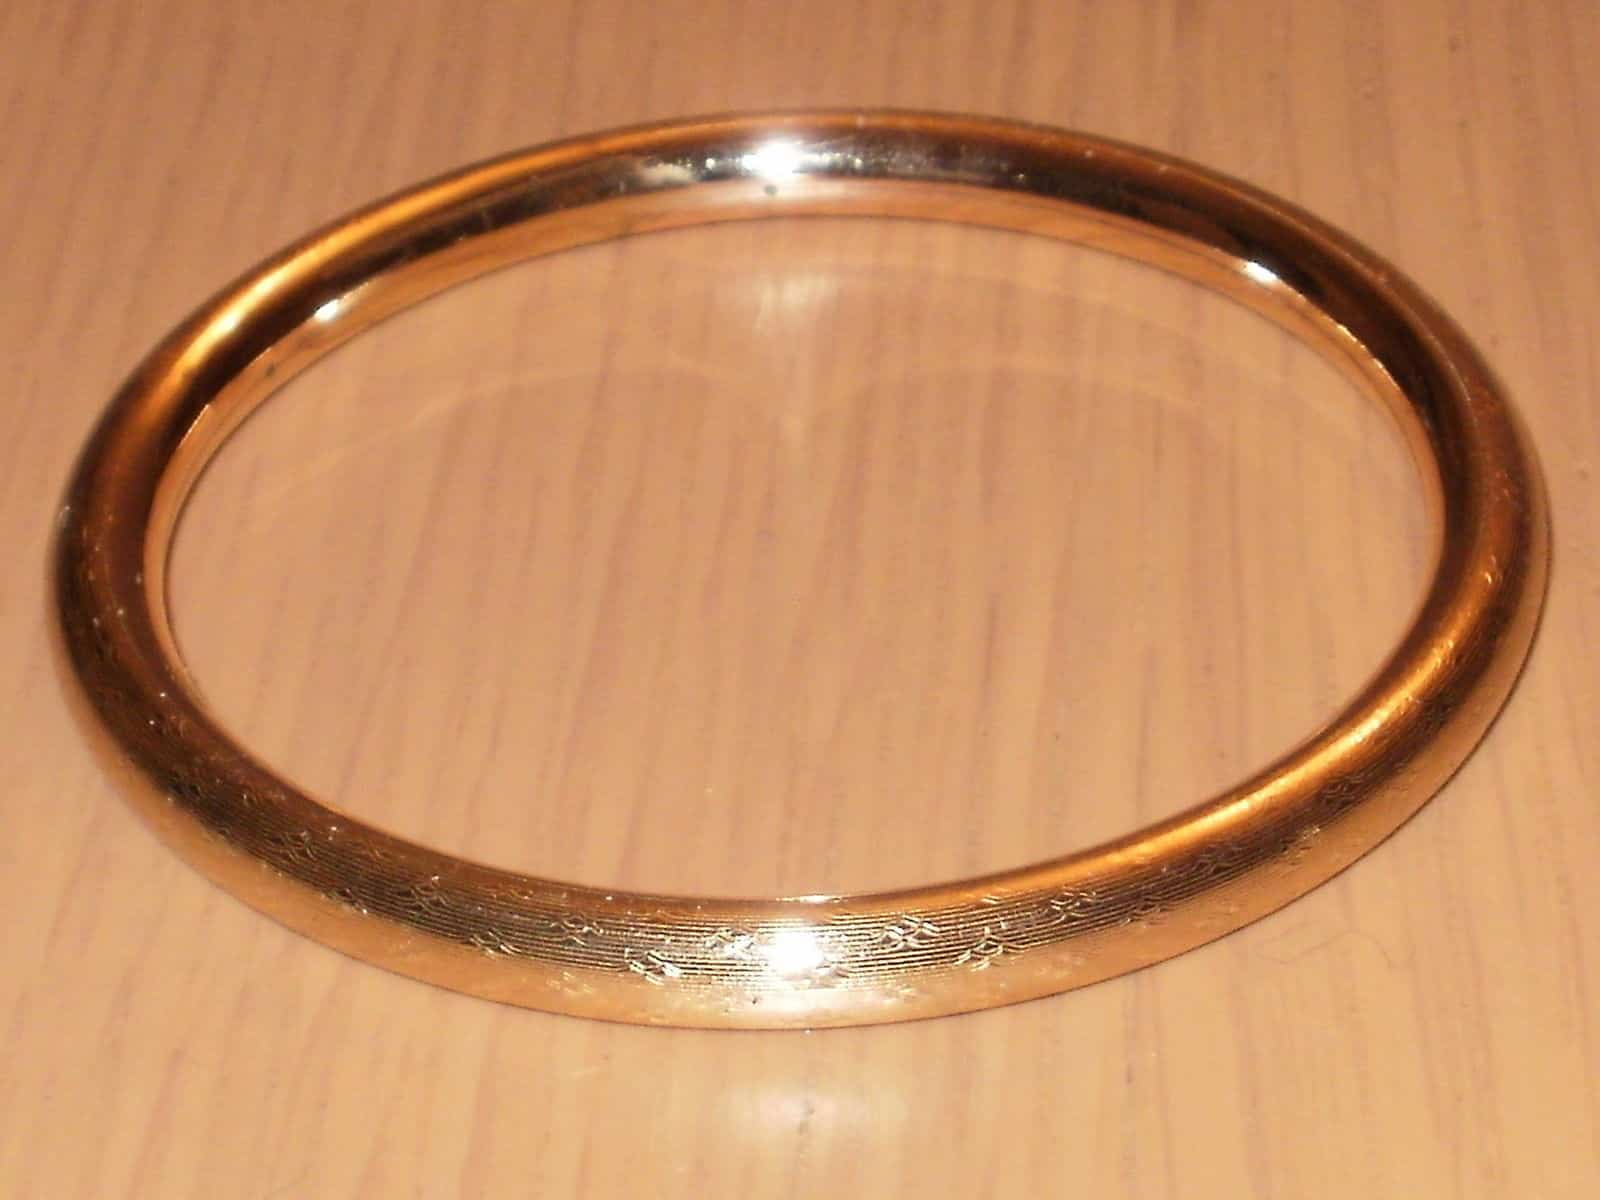 solid gold zoom plain one bangles listing il bangle fullxfull thin bracelet